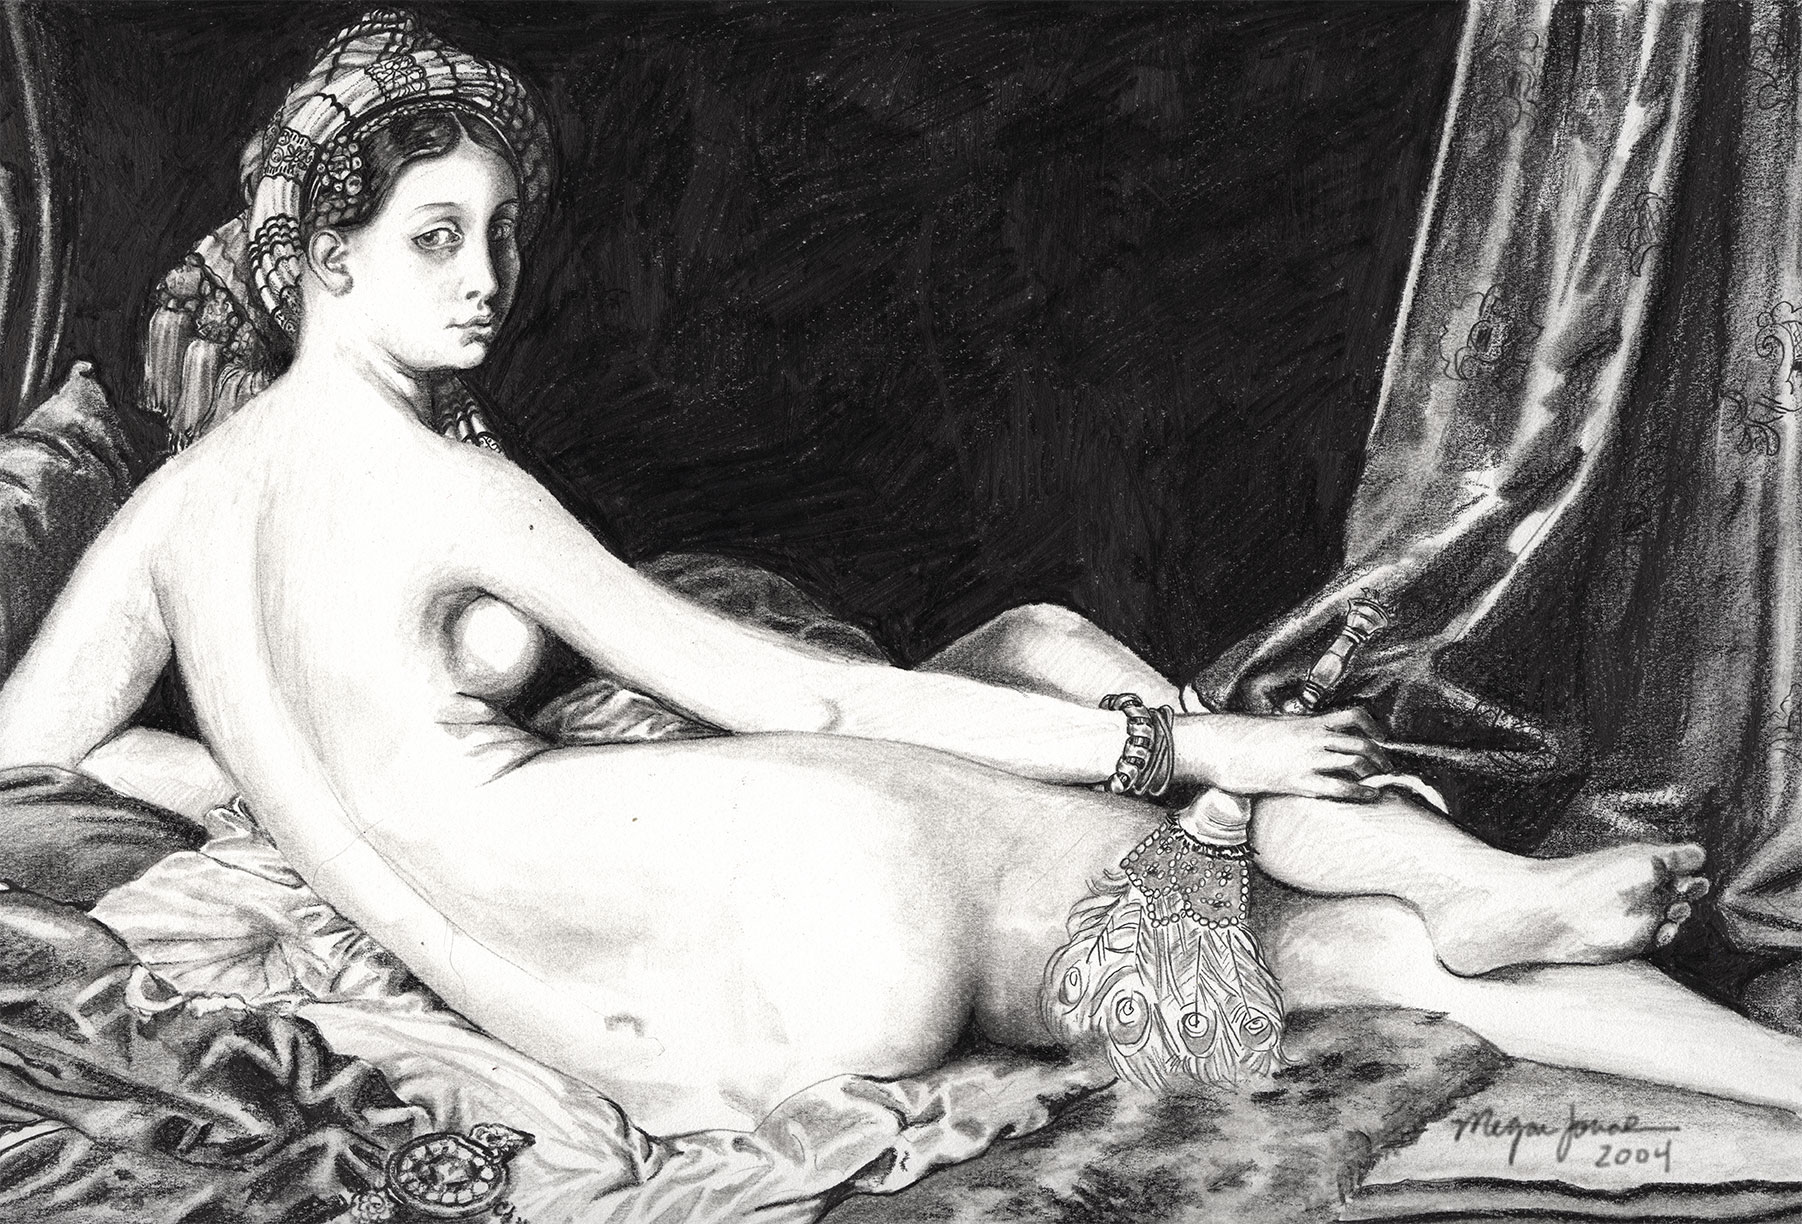 A pencil rendition of La Grande Odalisque by Jean Auguste Dominique Ingres.